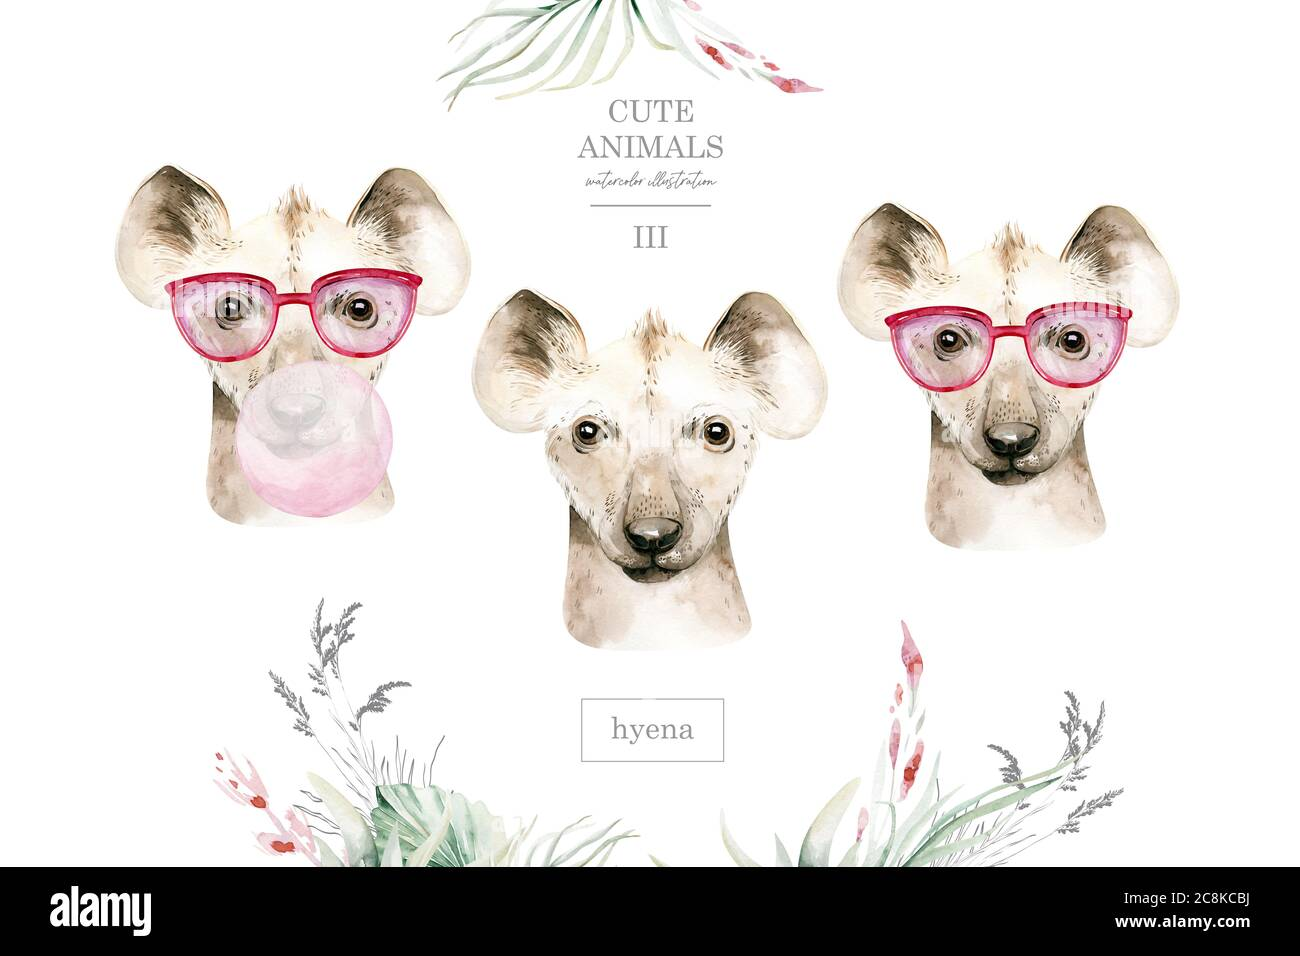 Cartoon Funny Hyena High Resolution Stock Photography And Images Alamy